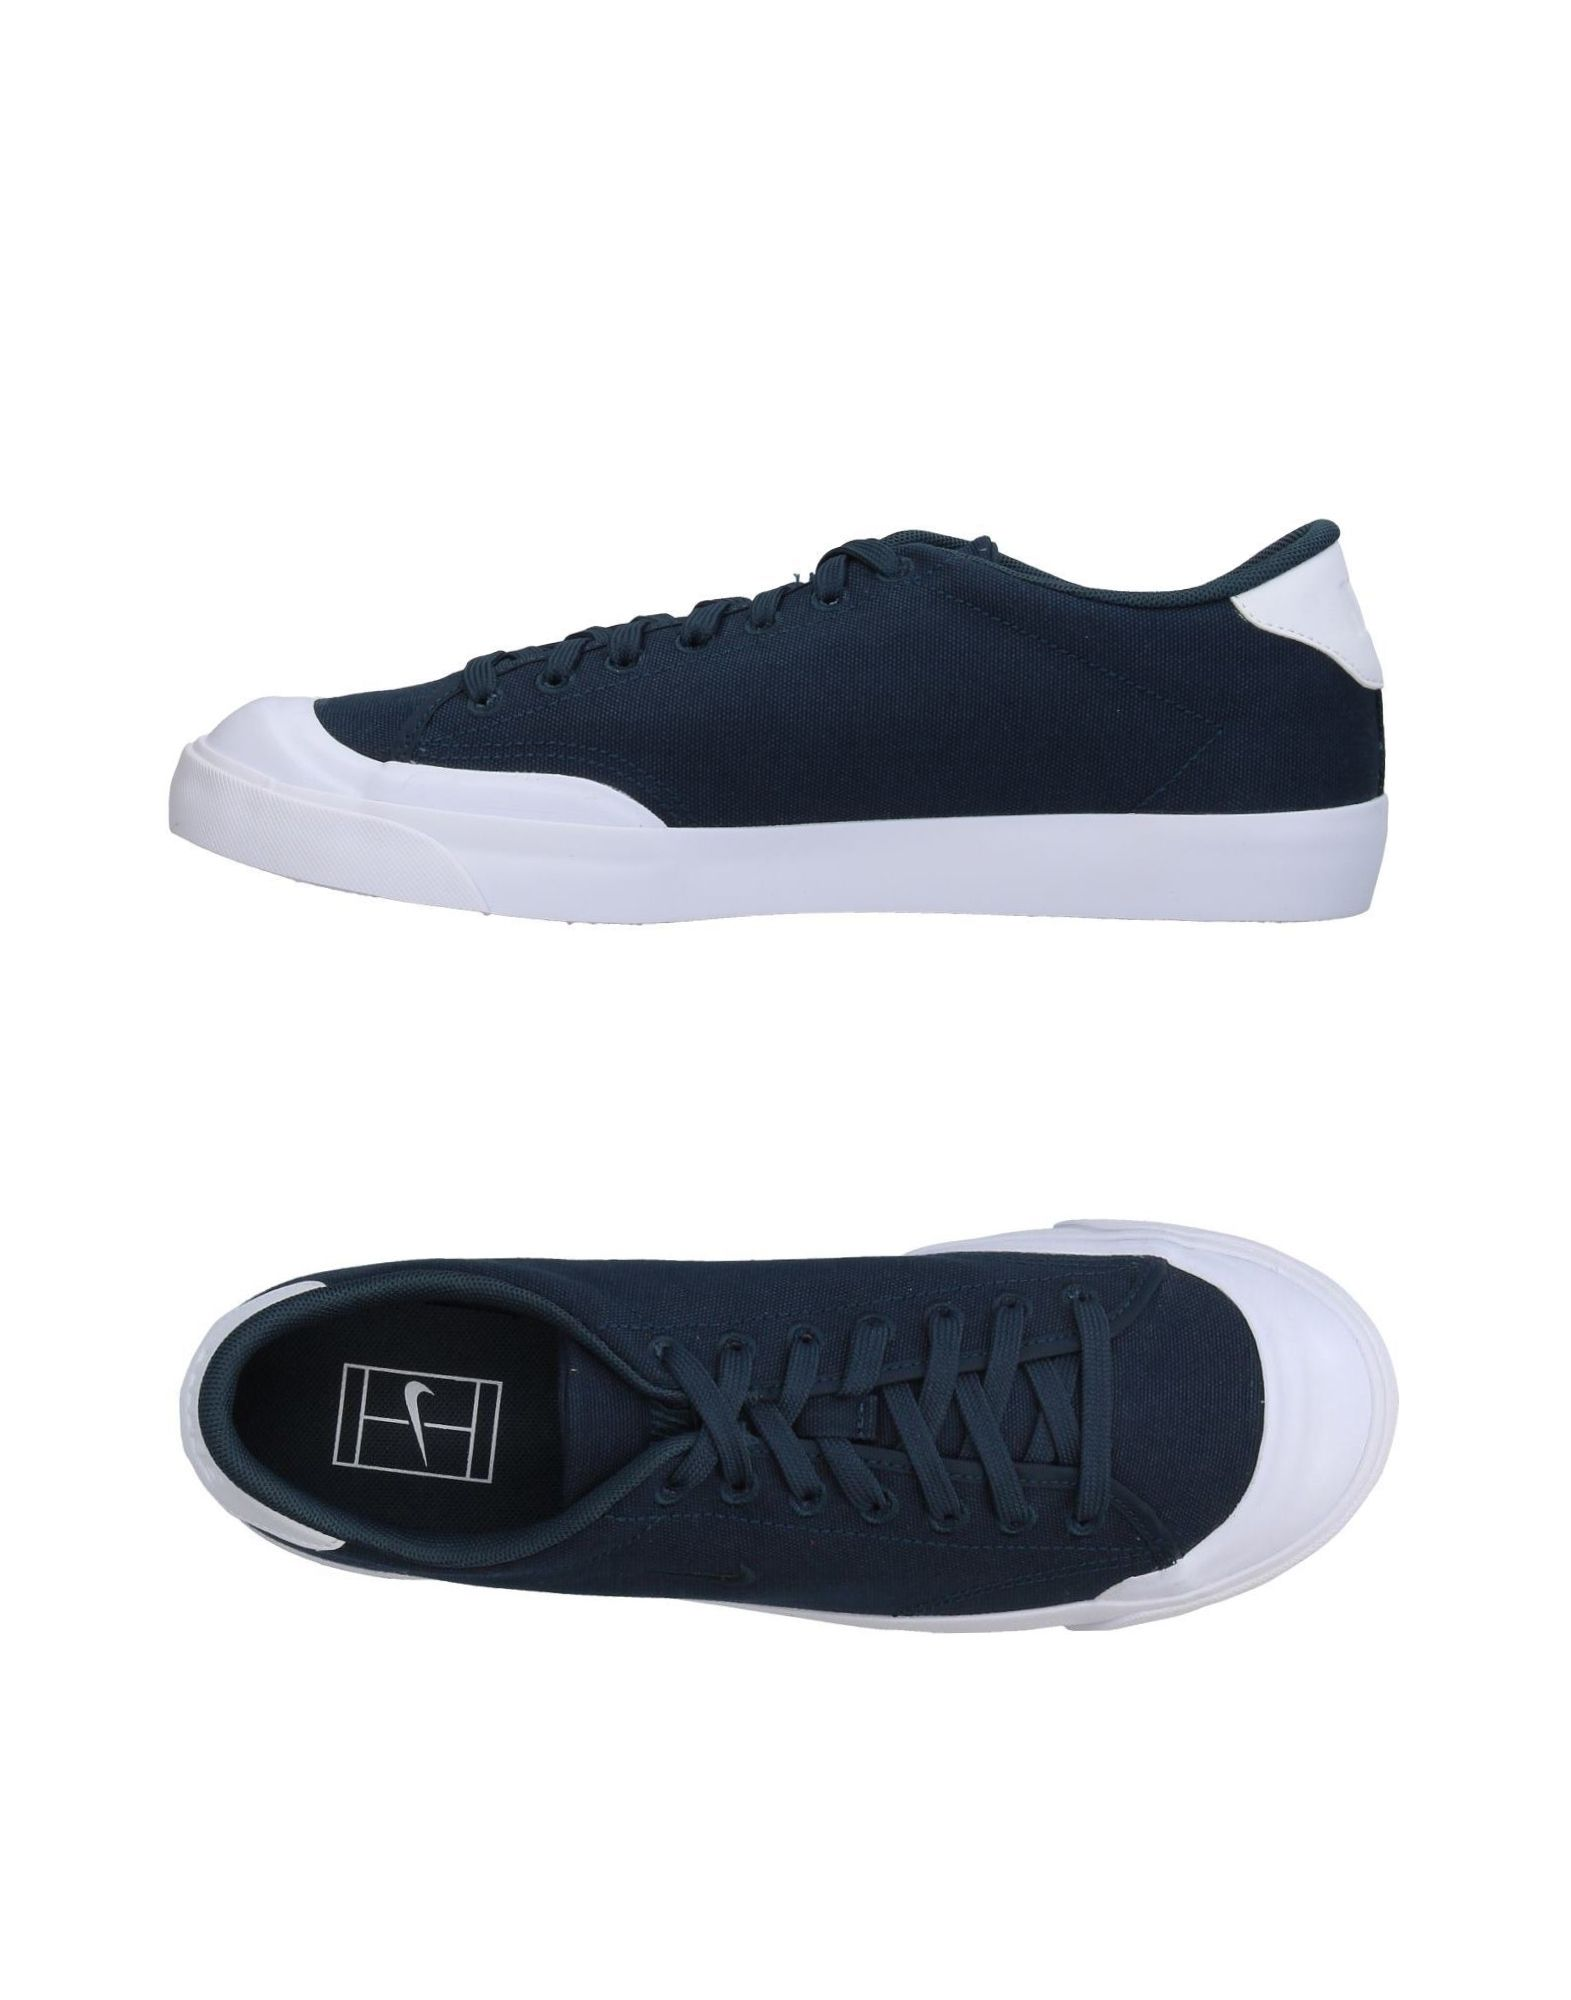 Sneakers Nike Homme - Sneakers Nike  Bleu foncé Chaussures casual sauvages